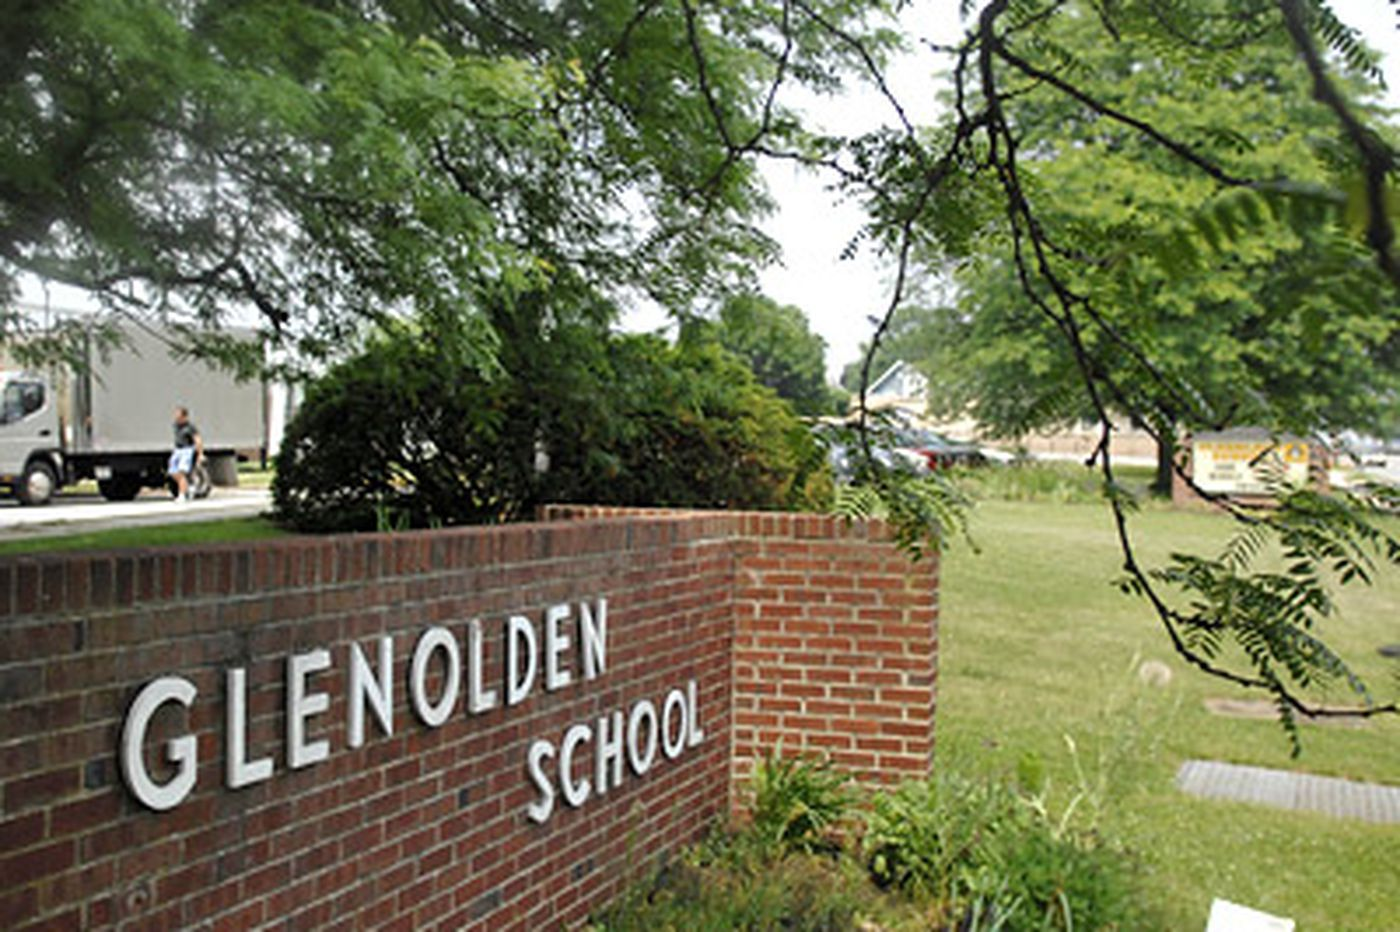 Delco mother held, charged with assaulting 2 Glenolden school employees